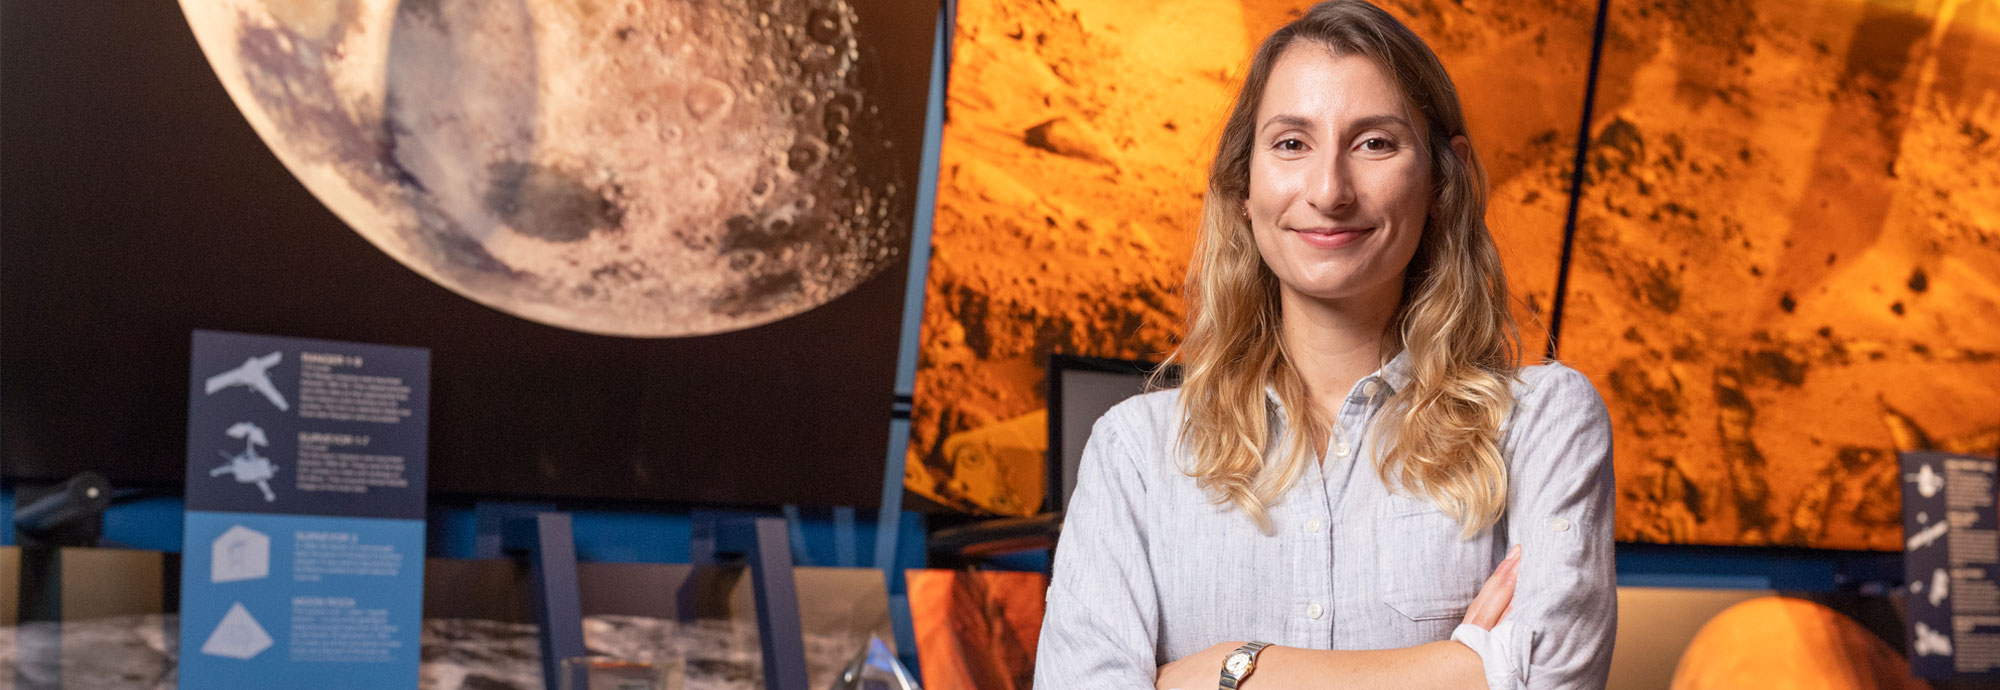 Pam Fusek '13 standing beside a photograph of the moon.